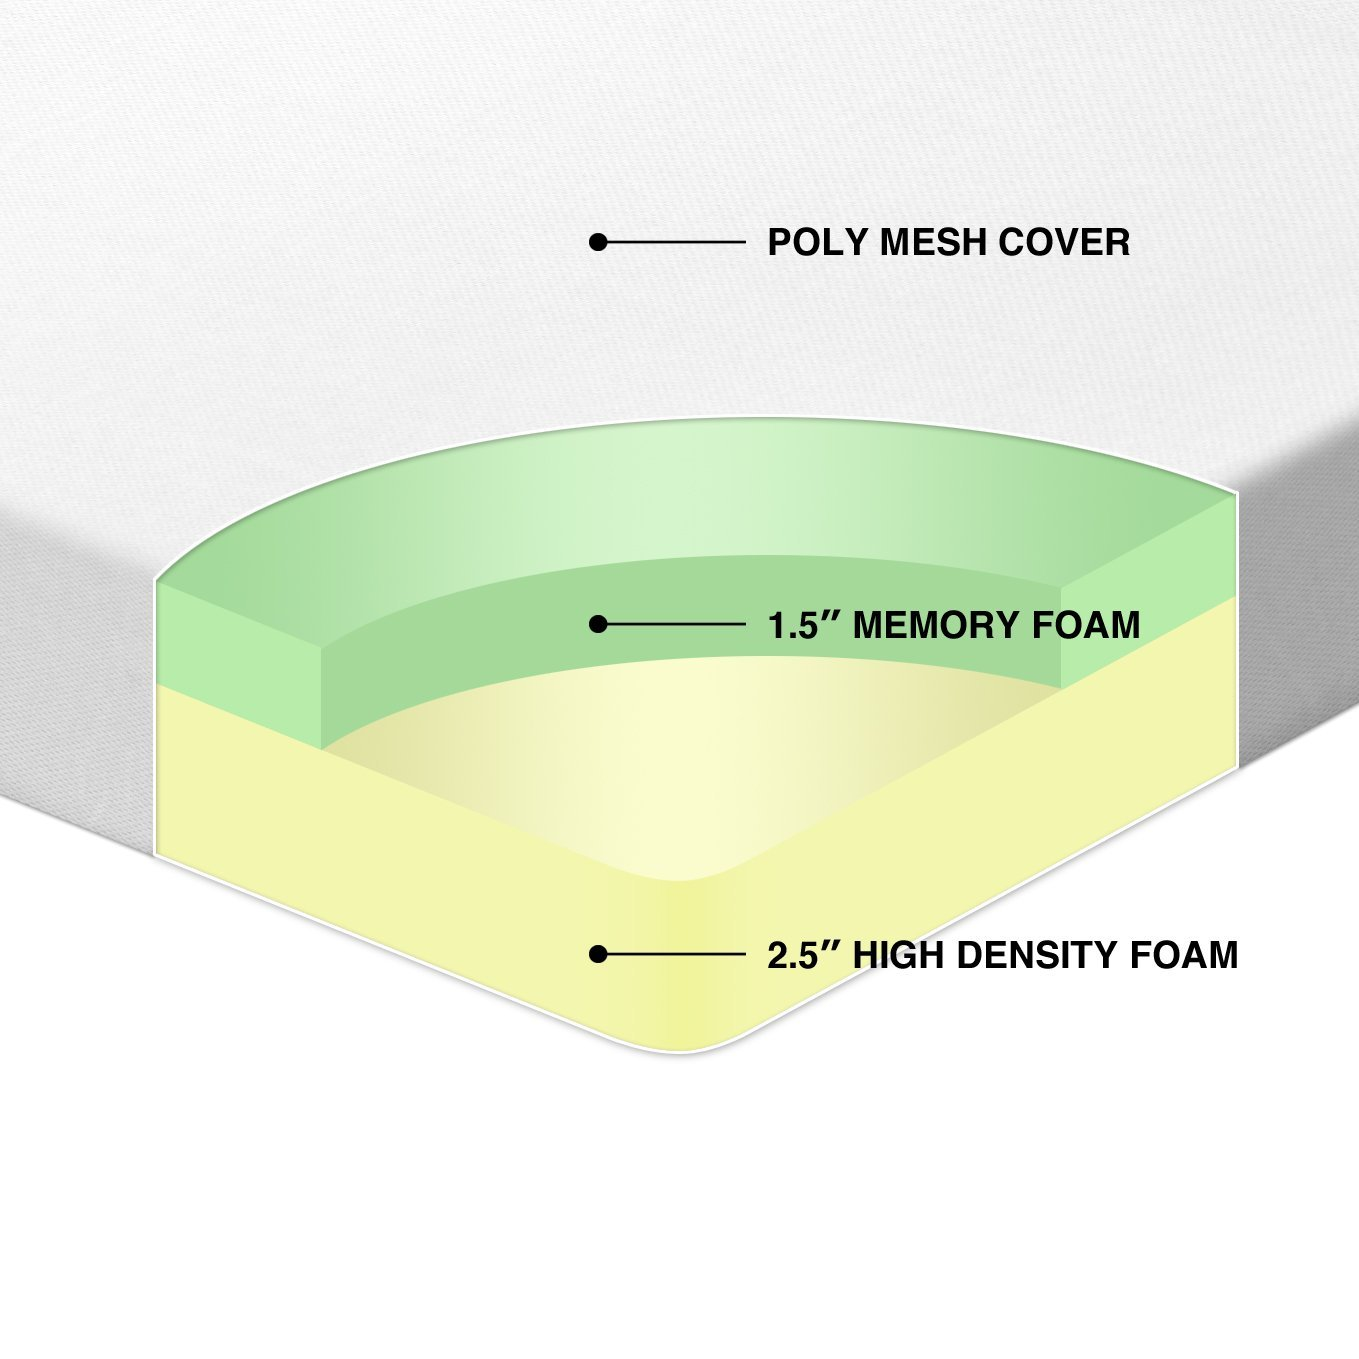 3 inch vs 4 inch memory foam topper 8 Best Memory Foam Mattress Toppers to Boost Your Sleep Quality  3 inch vs 4 inch memory foam topper